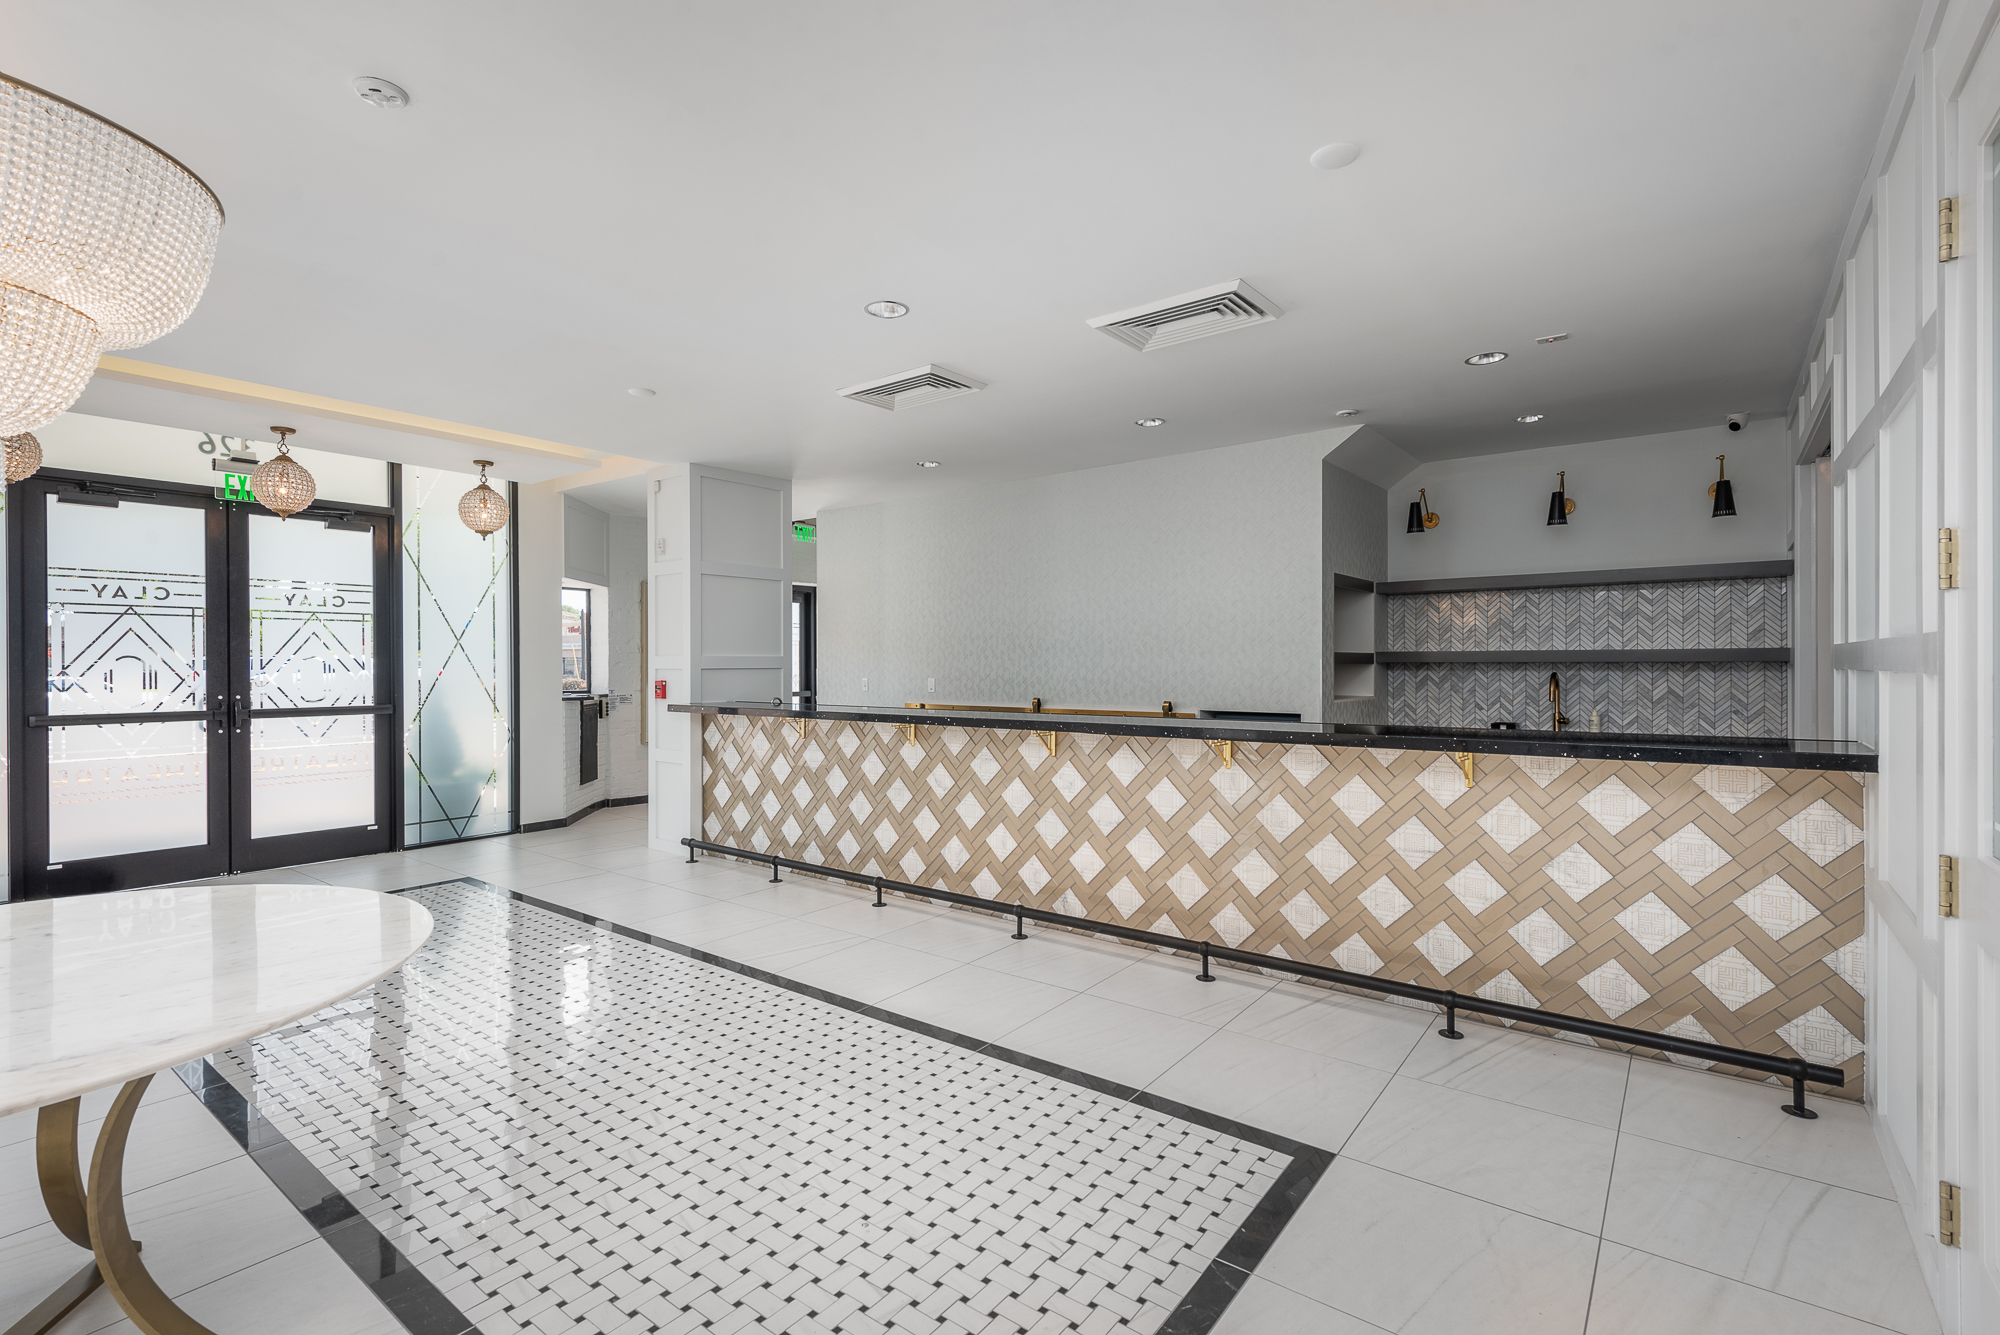 Micamy Design Studio_Interior Design_Clay Theatre_Event Space_Venue_Wedding_Art Deco_Modern_Marble Floors_Tile_Flower_Stairs_Bar.jpg